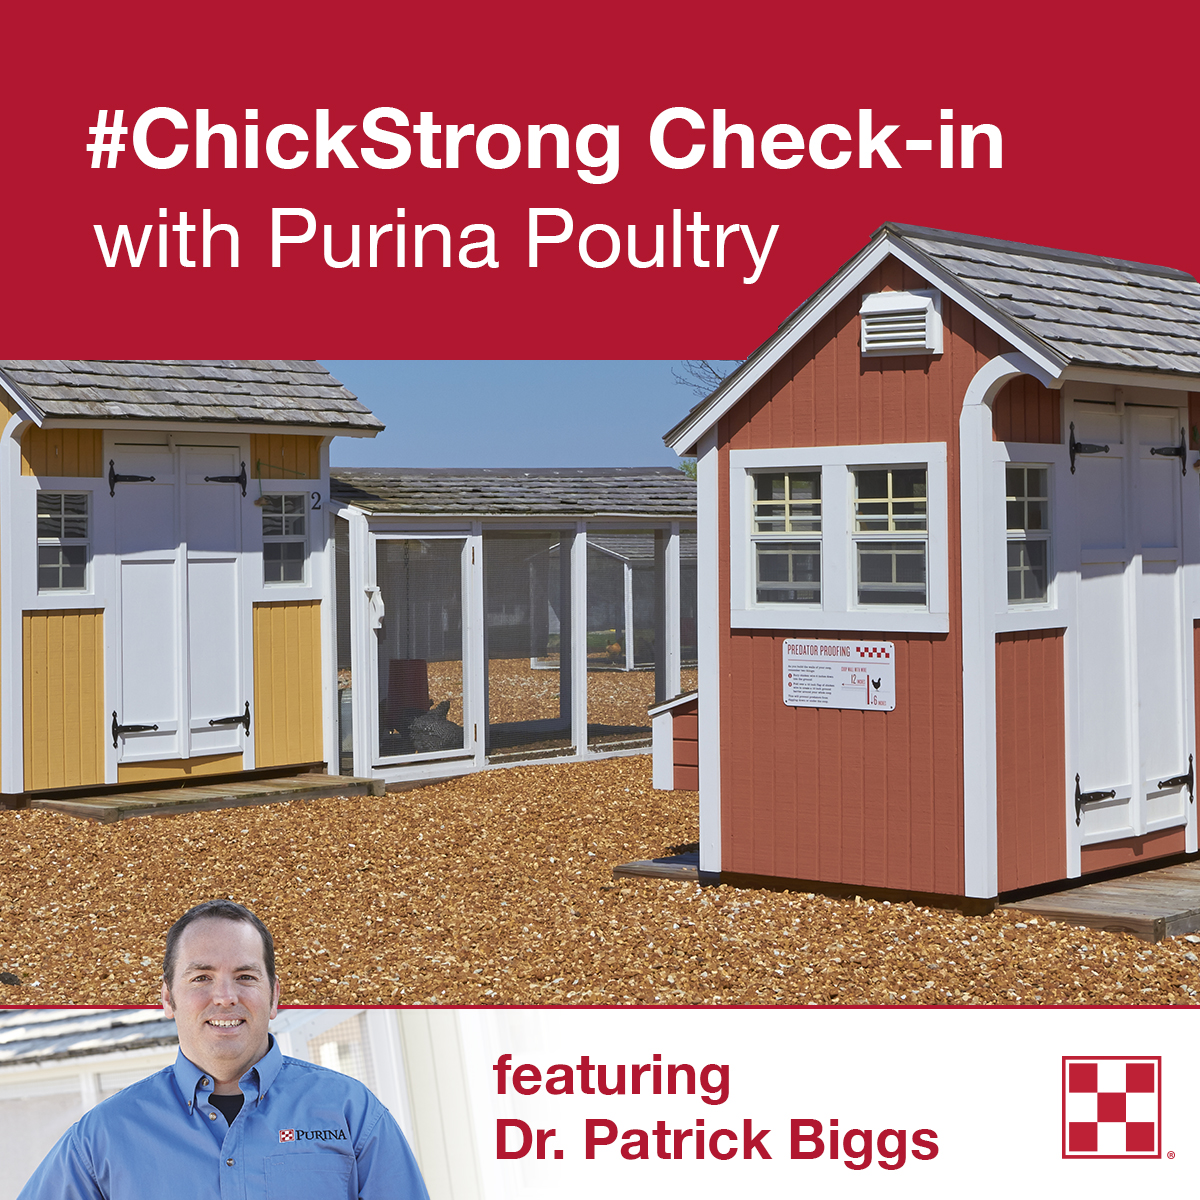 Purina_BYC FB Live Promo Post for Thread and FB_052118.jpg